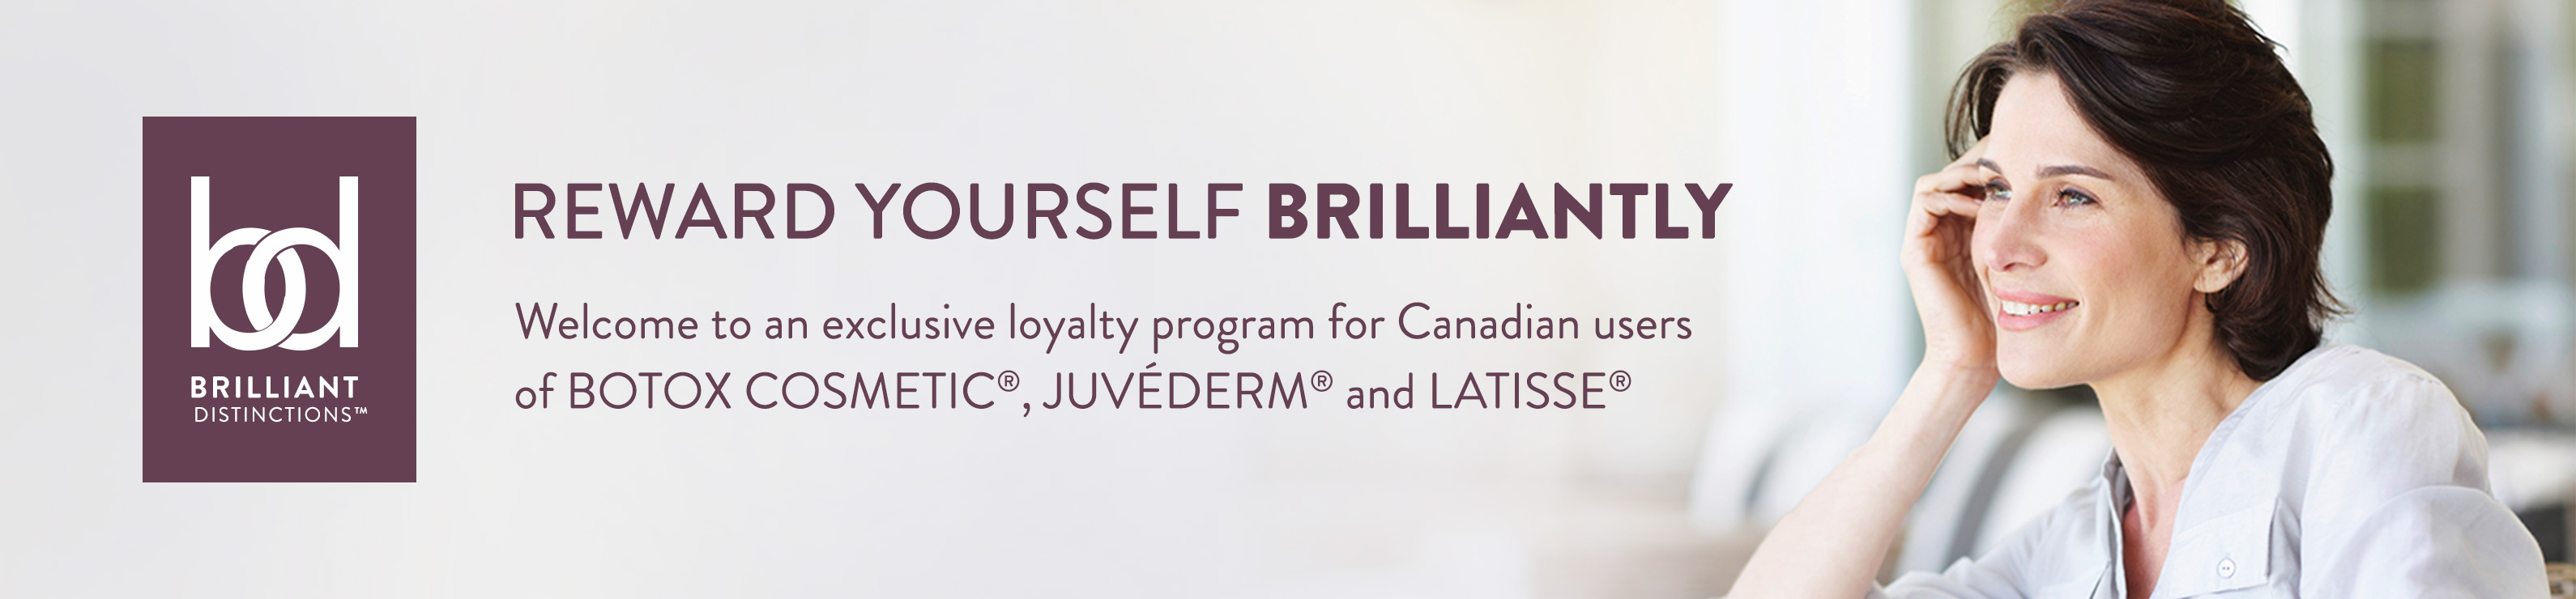 Welcome to an exclusive loyalty program for Canadian users of BOTOX COSMETIC®, JUVÉDERM® and LATISSE®.